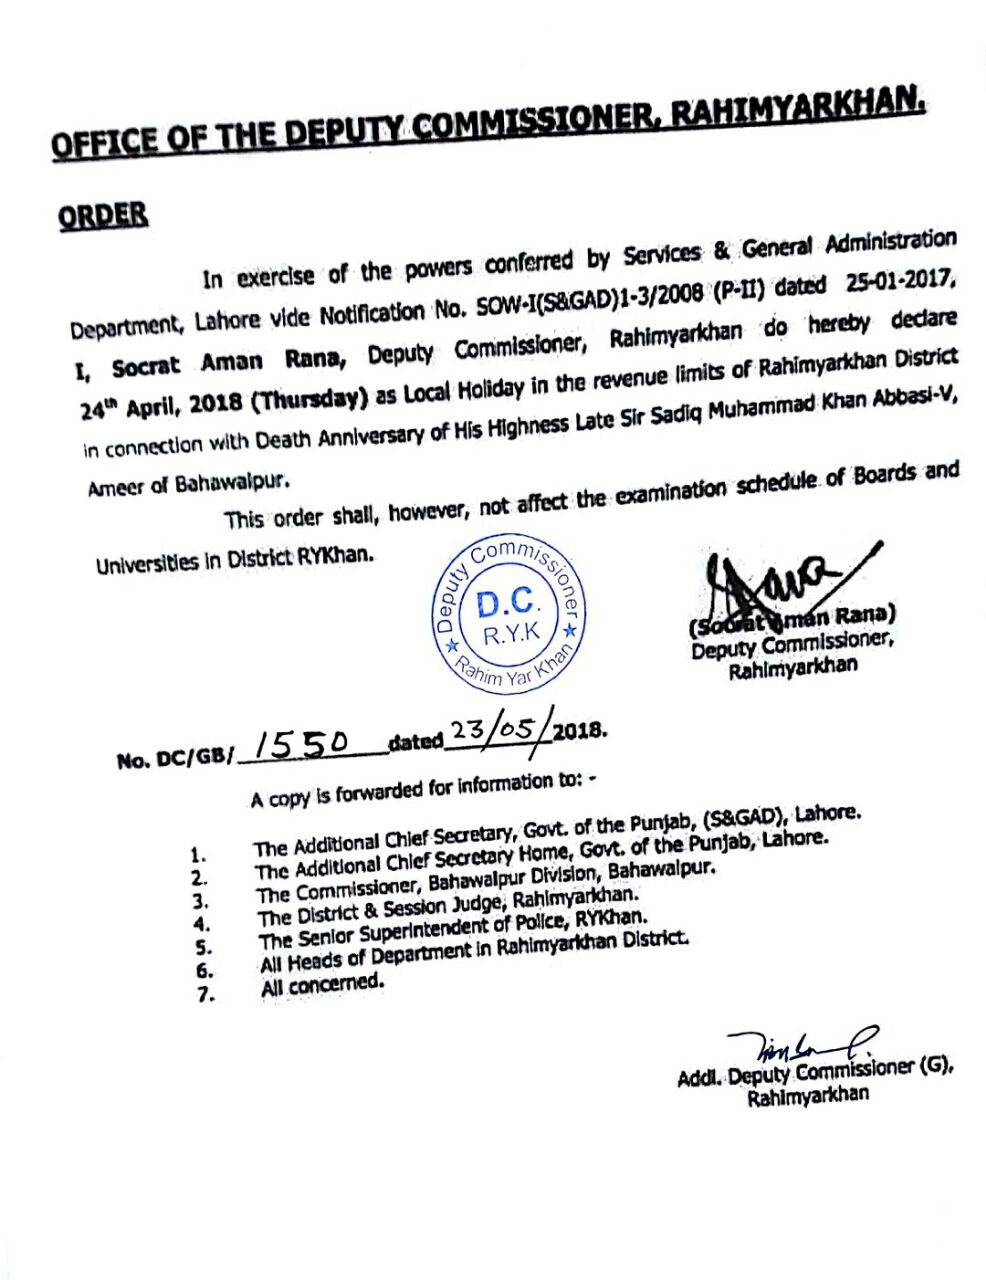 Dy. COMMISSIONER announced PUBLIC holiday in RAHIM YAR KHAN